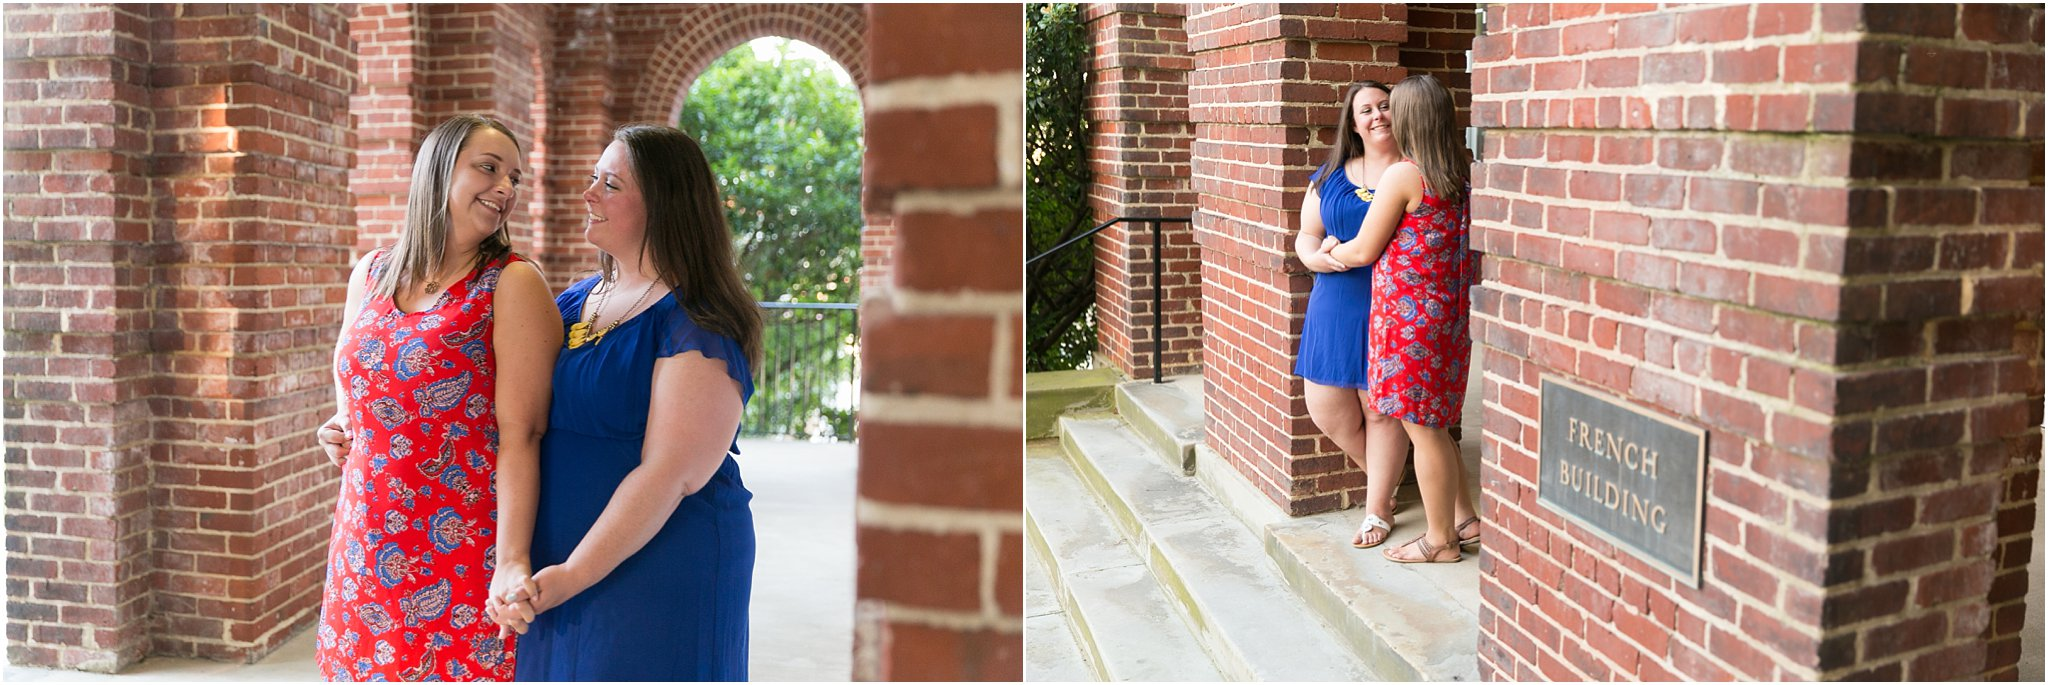 jessica_ryan_photography_longwood_university_engagement_portraits_virginia_0725